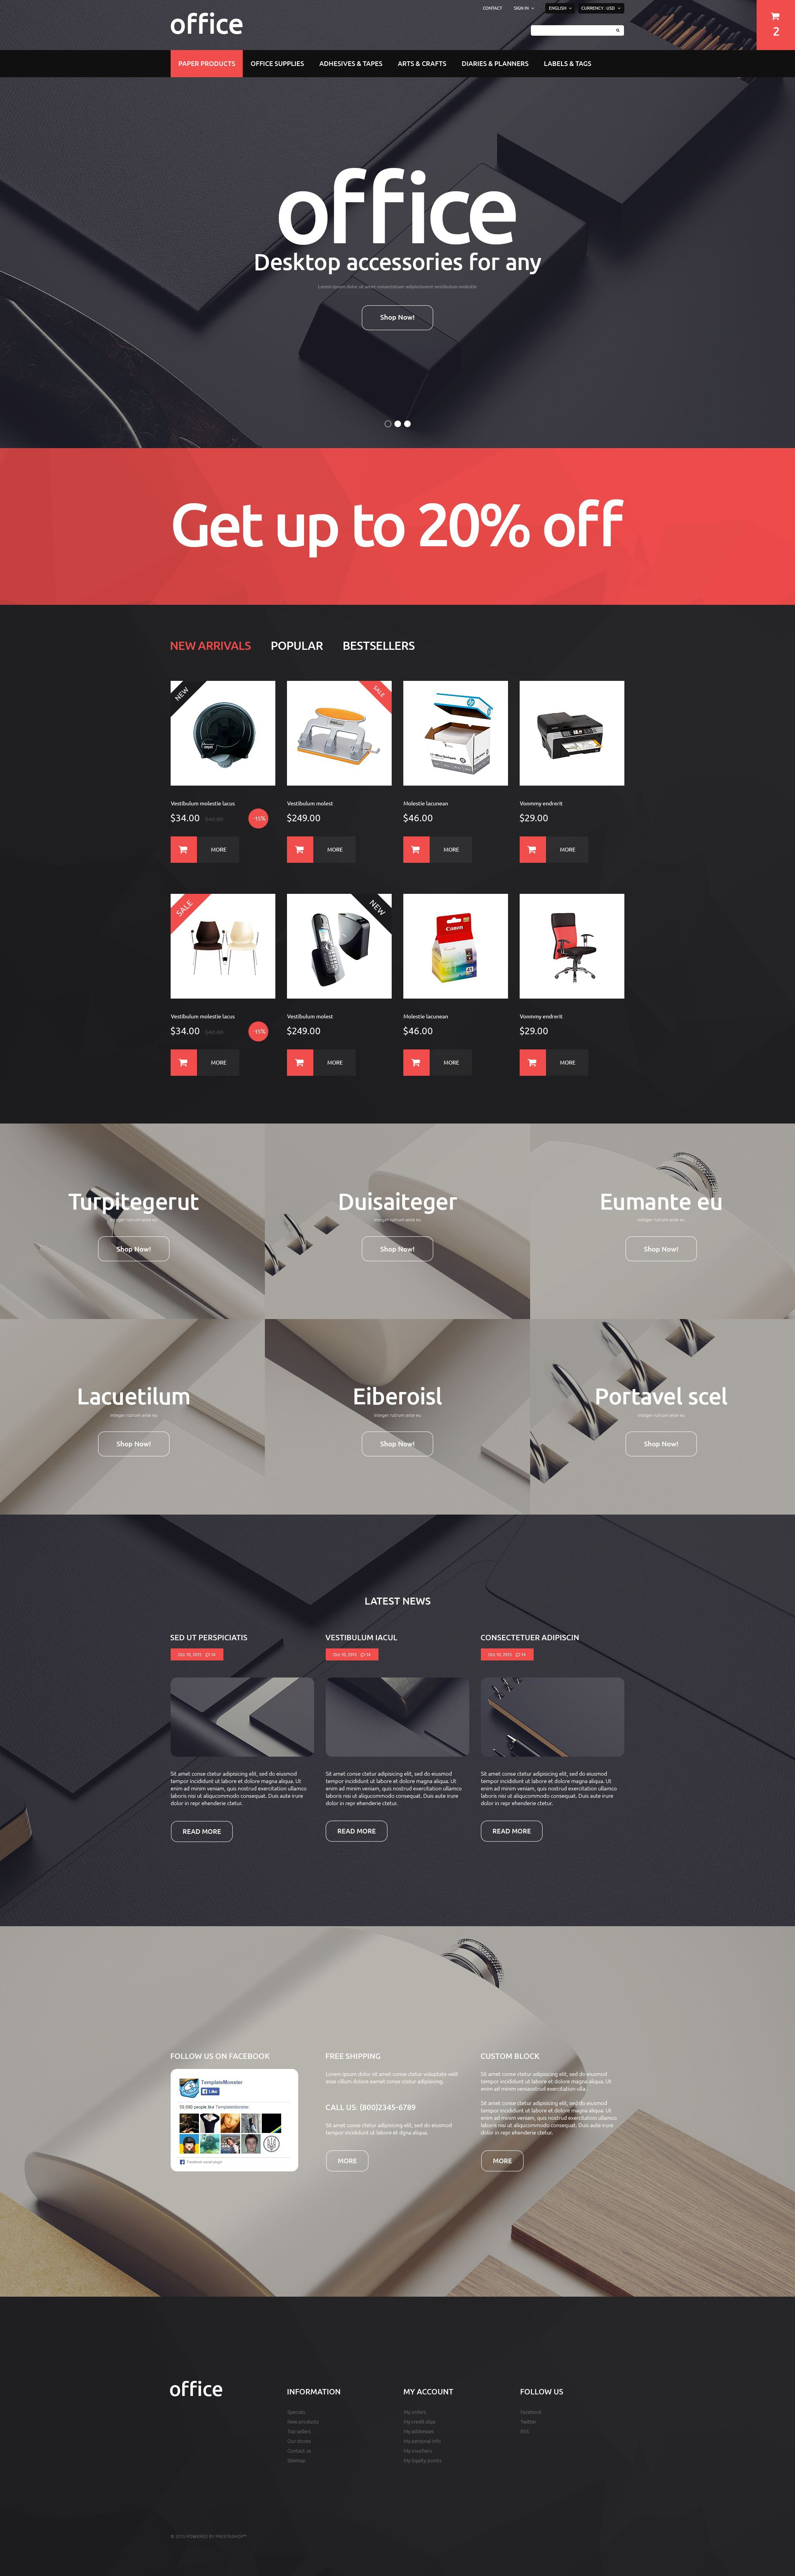 The Office Stationary Store PrestaShop Design 53605, one of the best PrestaShop themes of its kind (business, most popular), also known as office stationary store PrestaShop template, stationery PrestaShop template, office PrestaShop template, accessories PrestaShop template, writing PrestaShop template, materials PrestaShop template, pen PrestaShop template, marker PrestaShop template, ink PrestaShop template, paper PrestaShop template, notebook PrestaShop template, pencil and related with office stationary store, stationery, office, accessories, writing, materials, pen, marker, ink, paper, notebook, pencil, etc.